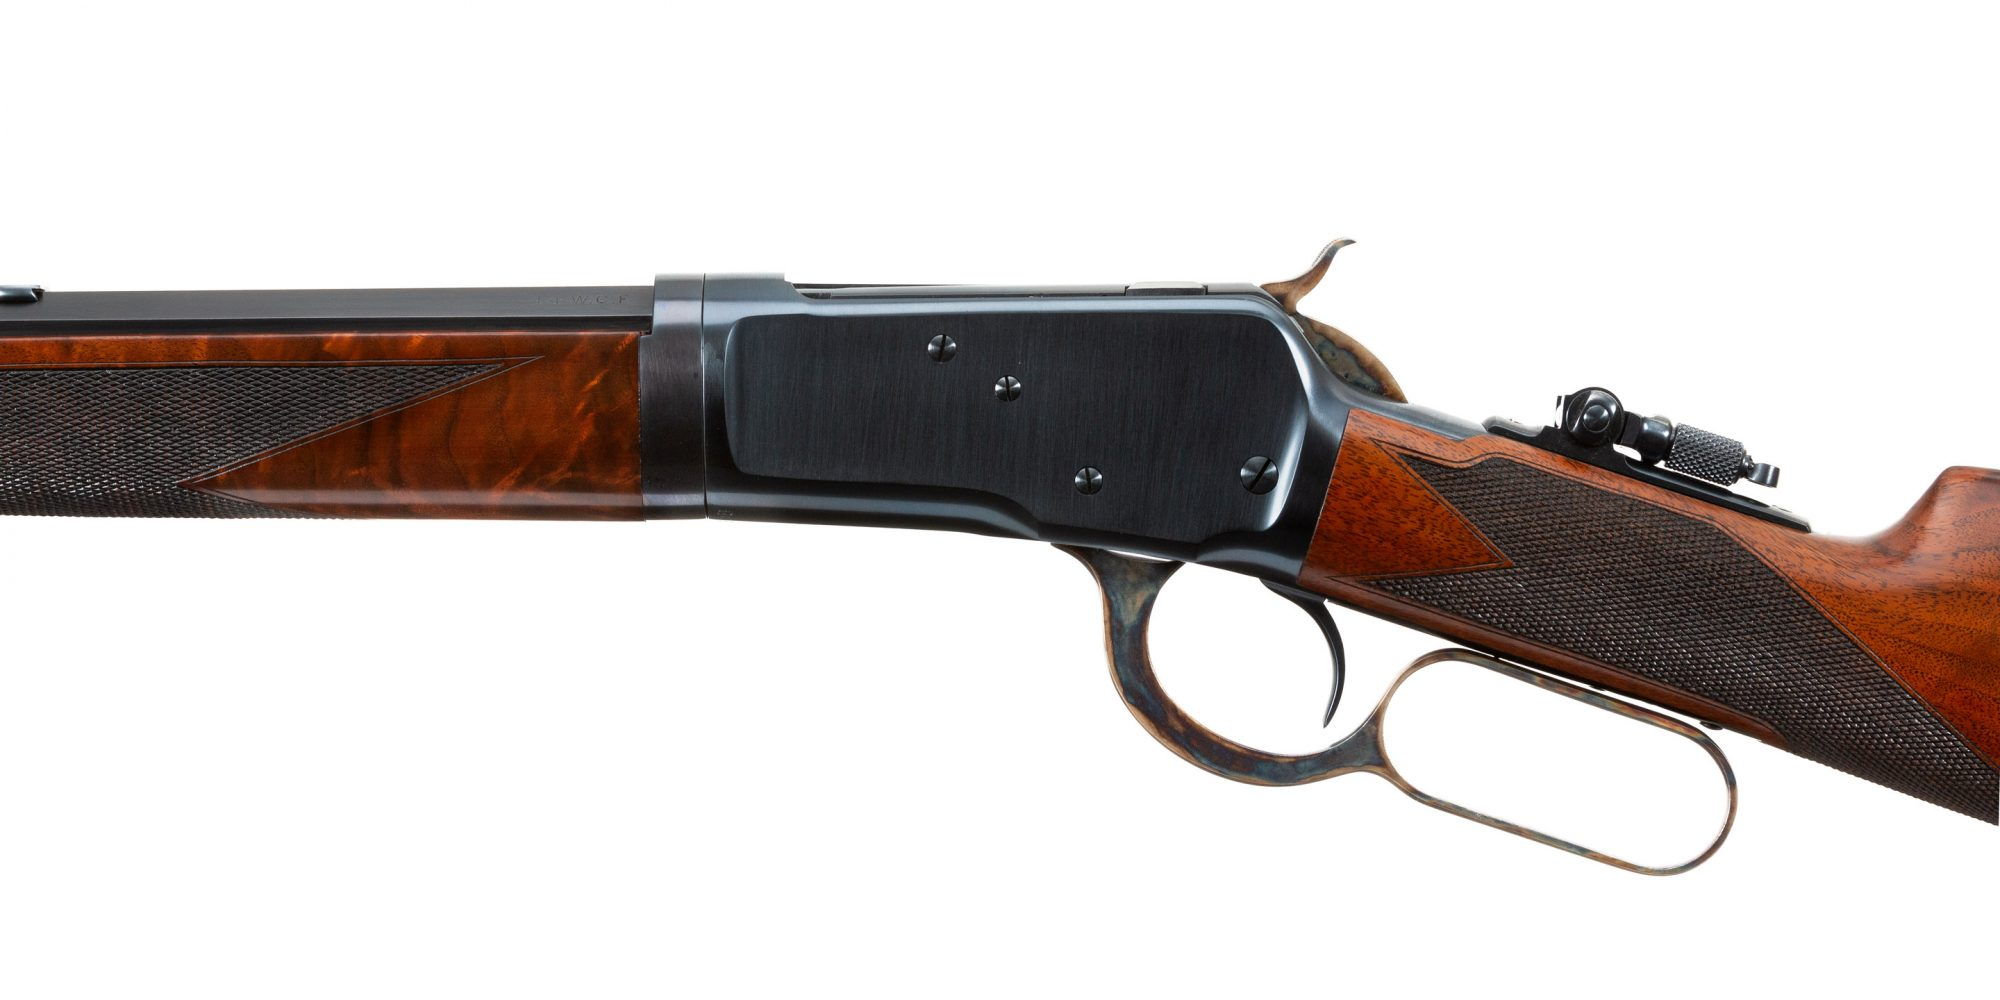 Photo of a pre-owned Winchester Model 1892 Takedown, previously restored by Turnbull Restoration and now up for sale